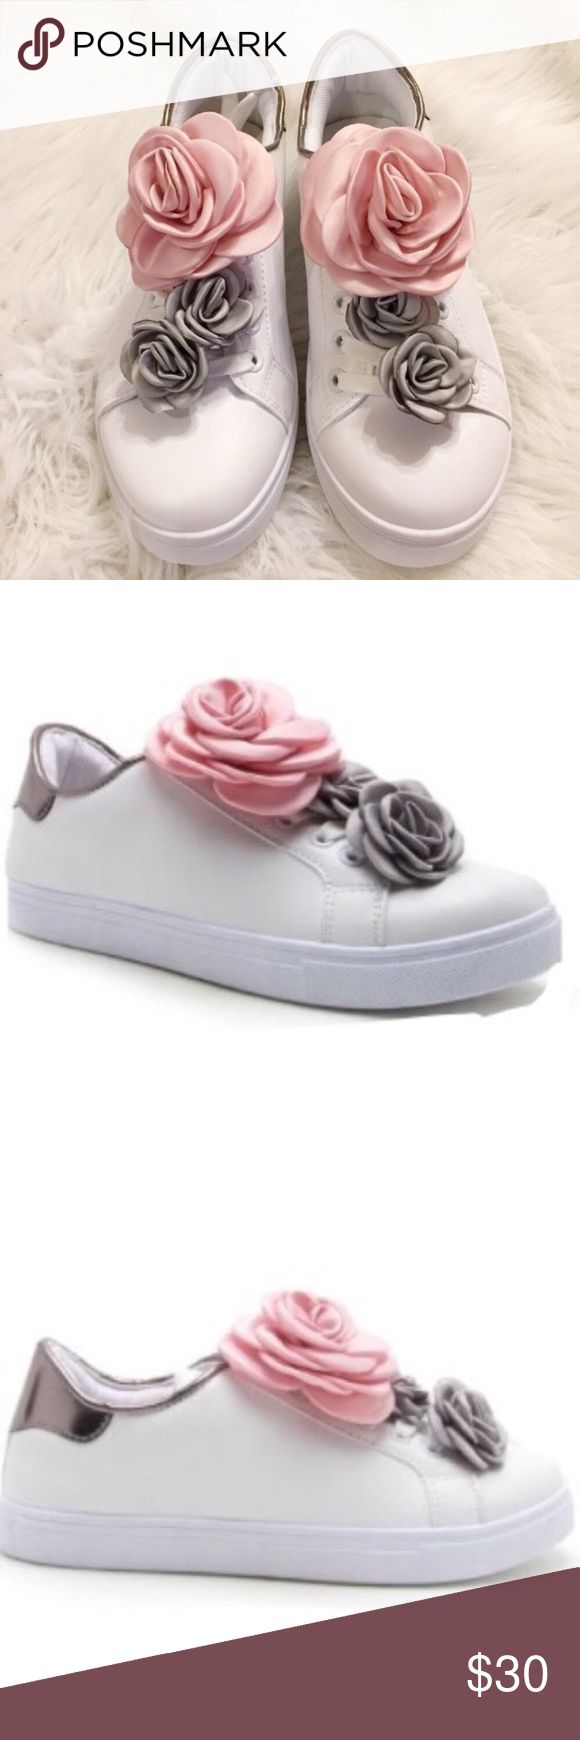 "Women's pink gray and silver floral sneakers These are beyond cute. White sneakers with pink and gray removable flowers and silver detailing. Padded sole approx 1.25"" heel height. New in box. See last pic for a few marks that I'm not sure what they are and have not tried to spot clean. They are on the inner part of the right shoe. Price has been adjusted✂️ Shoes Sneakers"